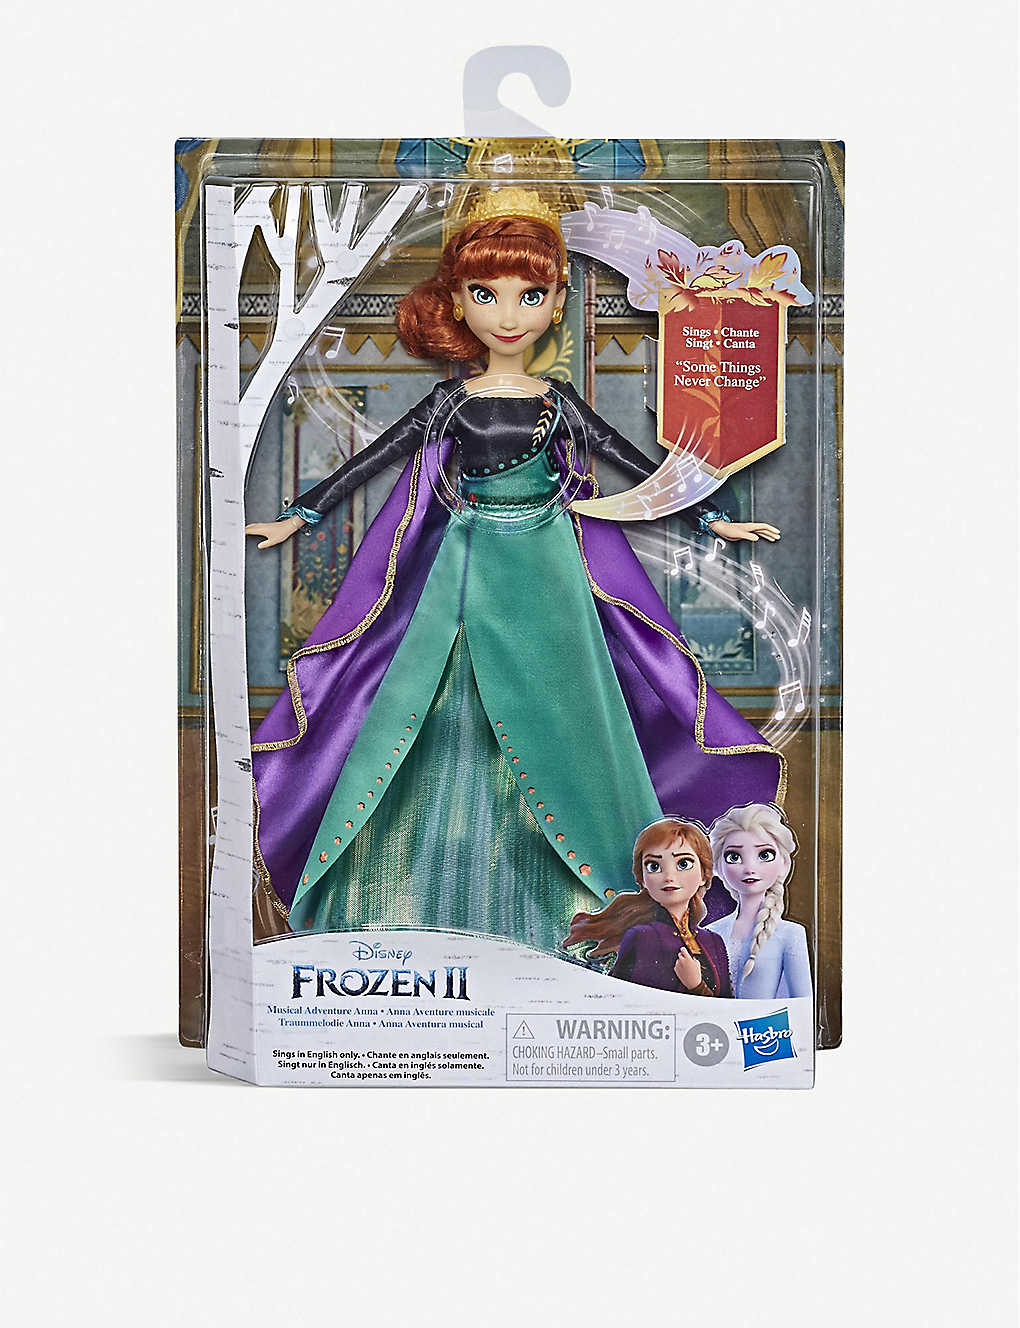 FROZEN II: Disney Frozen II Musical Adventure Anna doll